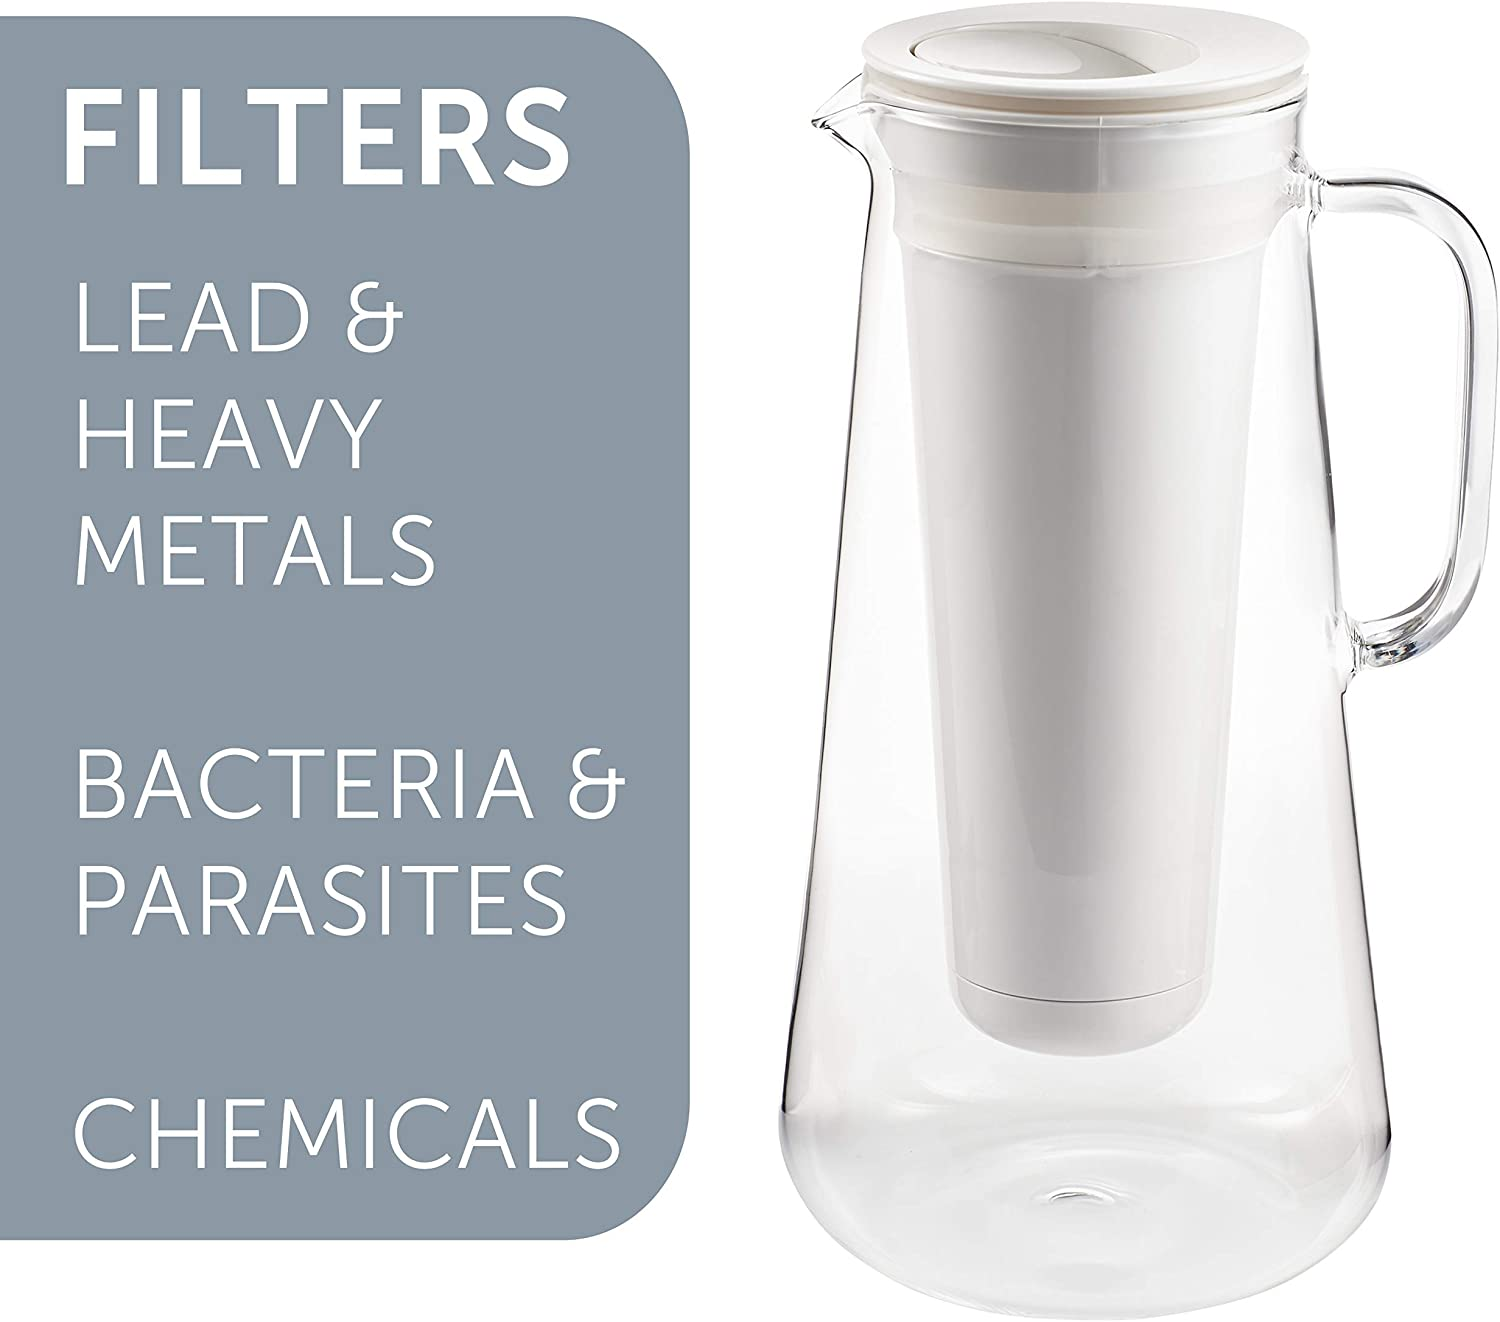 LifeStraw Home 7-Cup Glass Water Filter Pitcher Tested to Predect Against Bacteria, Parasites, Microplastics, Lead, Mercury, and a Variety of Chemicals (White)